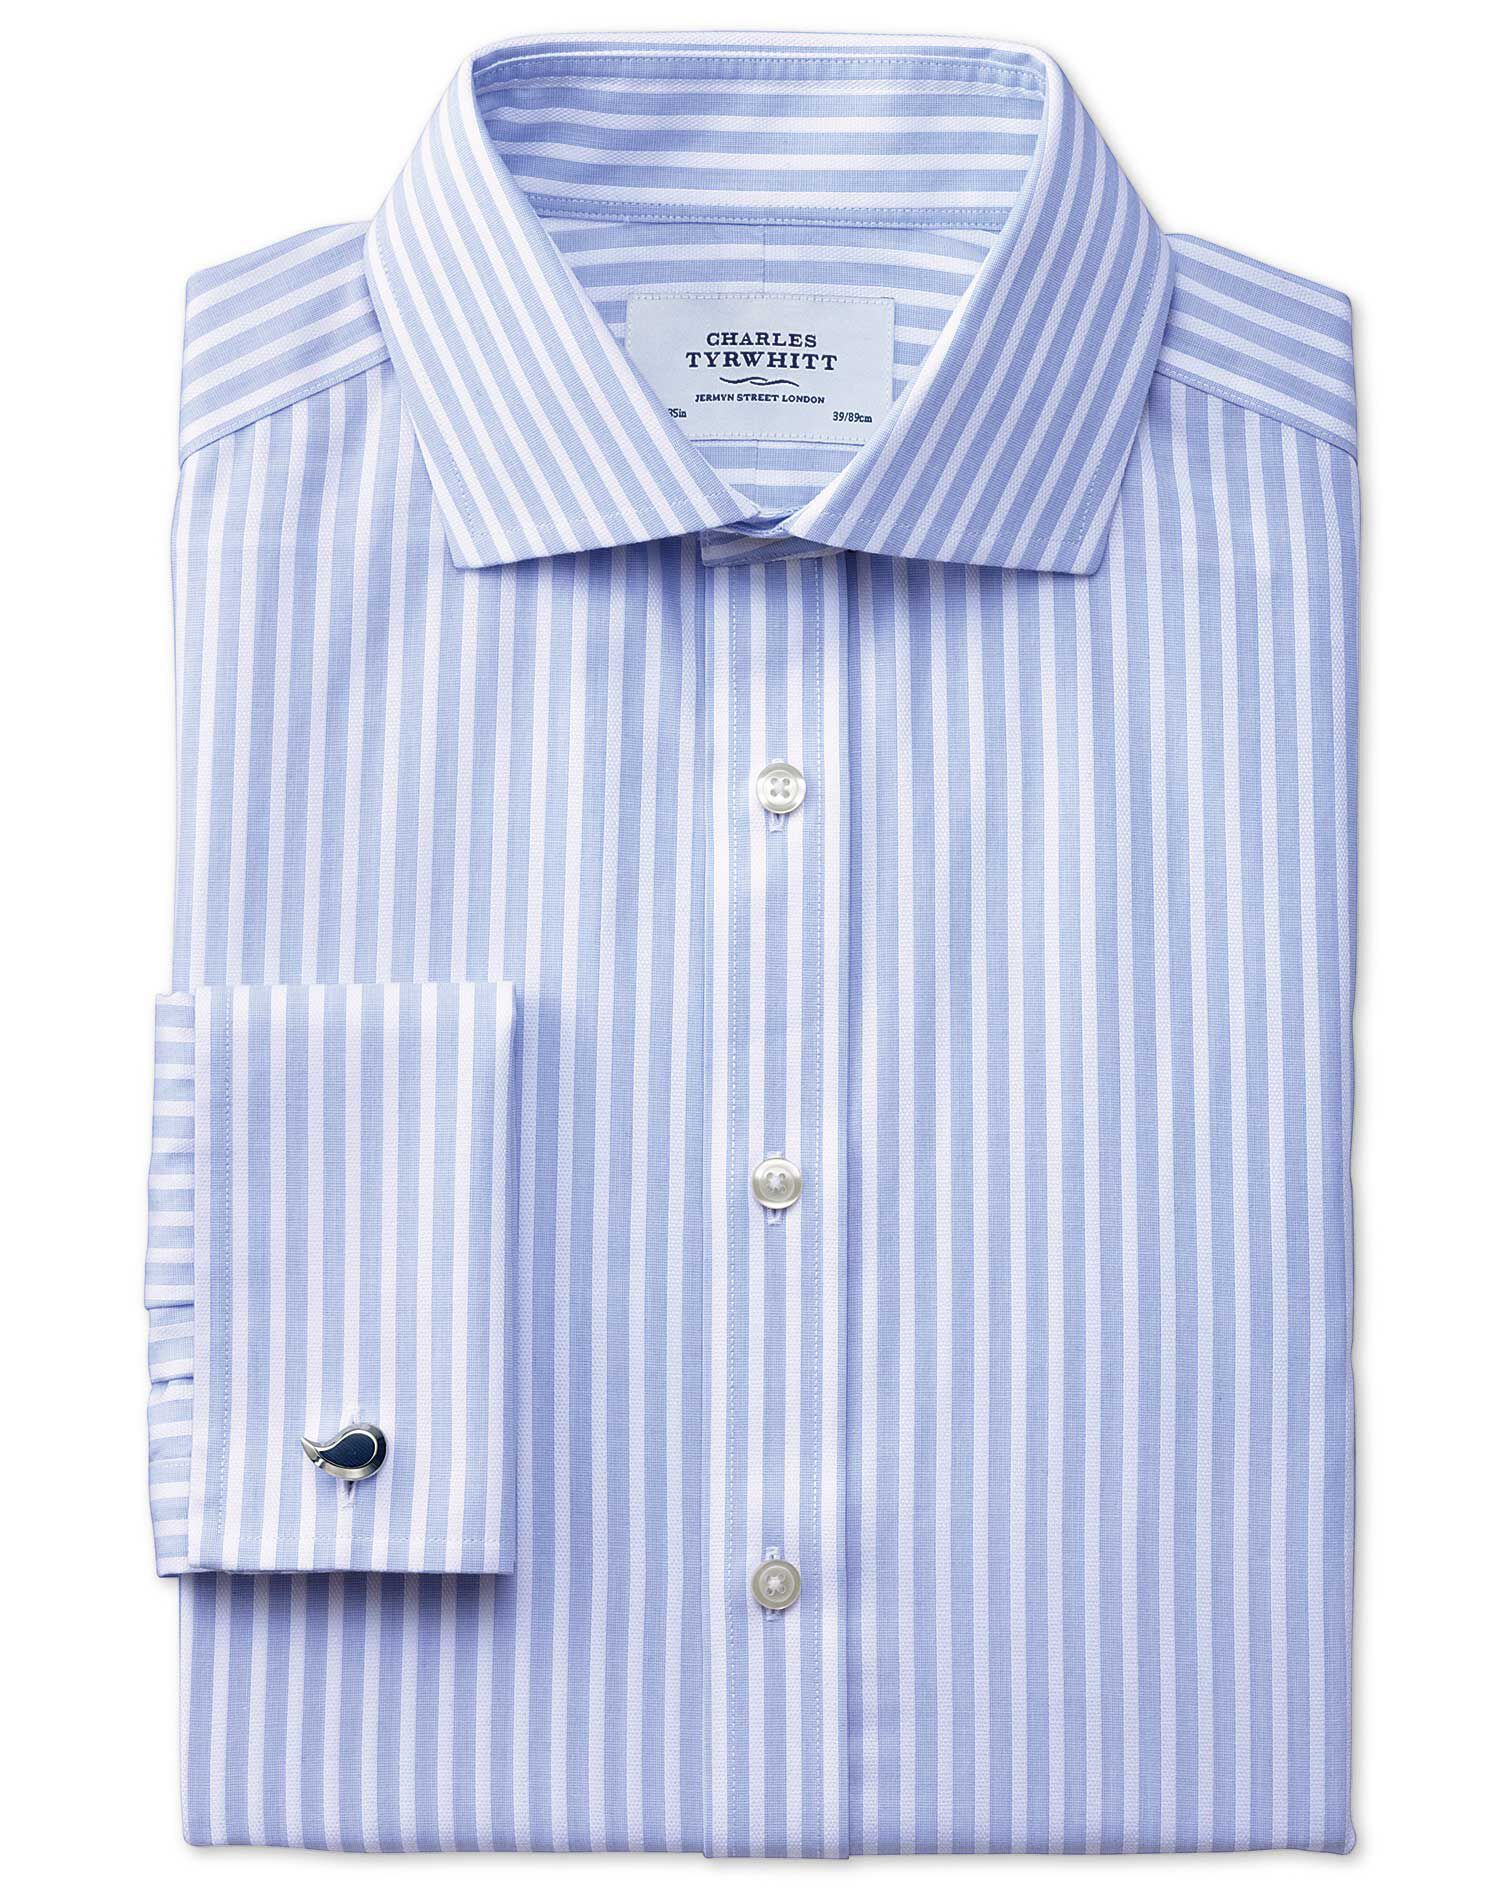 Slim Fit Cutaway Collar Non-Iron Stripe White and Sky Blue Cotton Formal Shirt Single Cuff Size 16.5